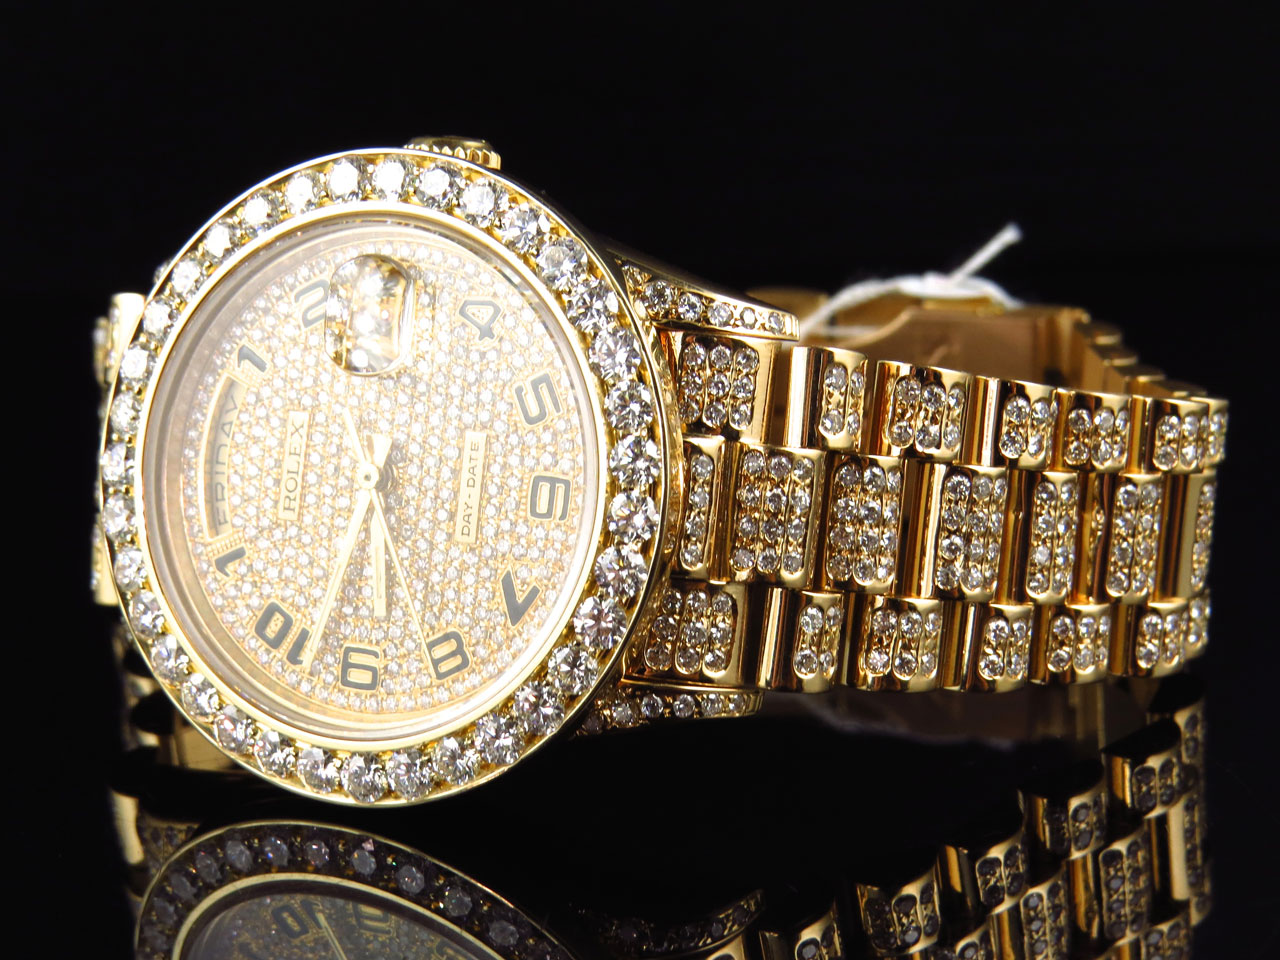 18k yellow gold mens rolex presidential day date diamond bezel 18k yellow gold mens rolex presidential day date diamond bezel watch 19 ct